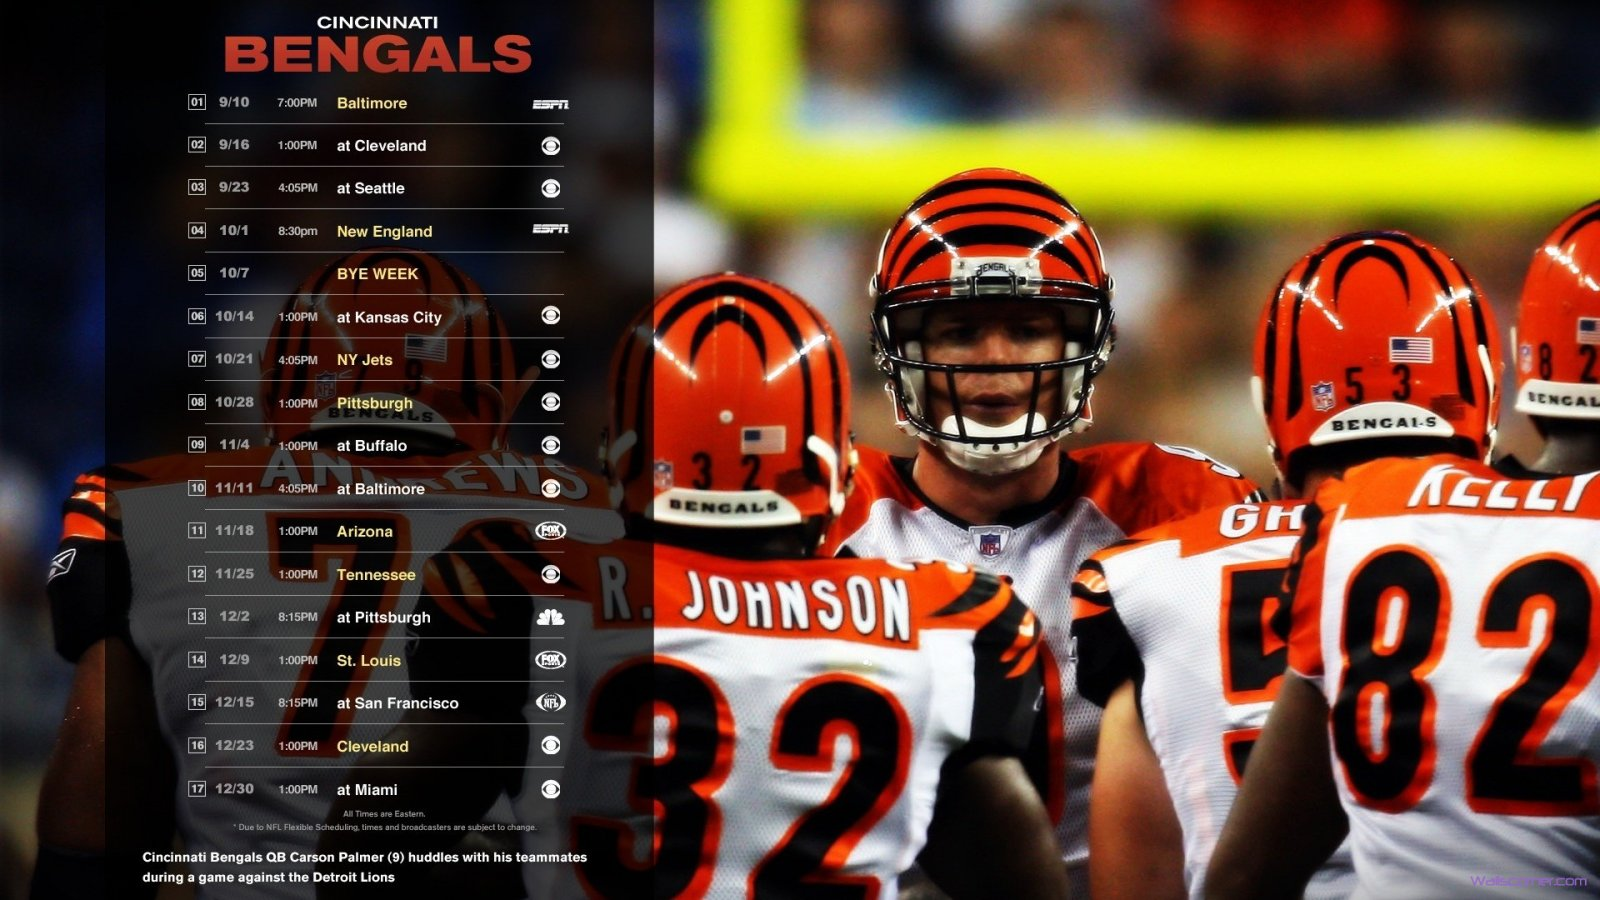 Cincinnati bengals season scheludes 173 hd  1600x900 HD Wallpaper